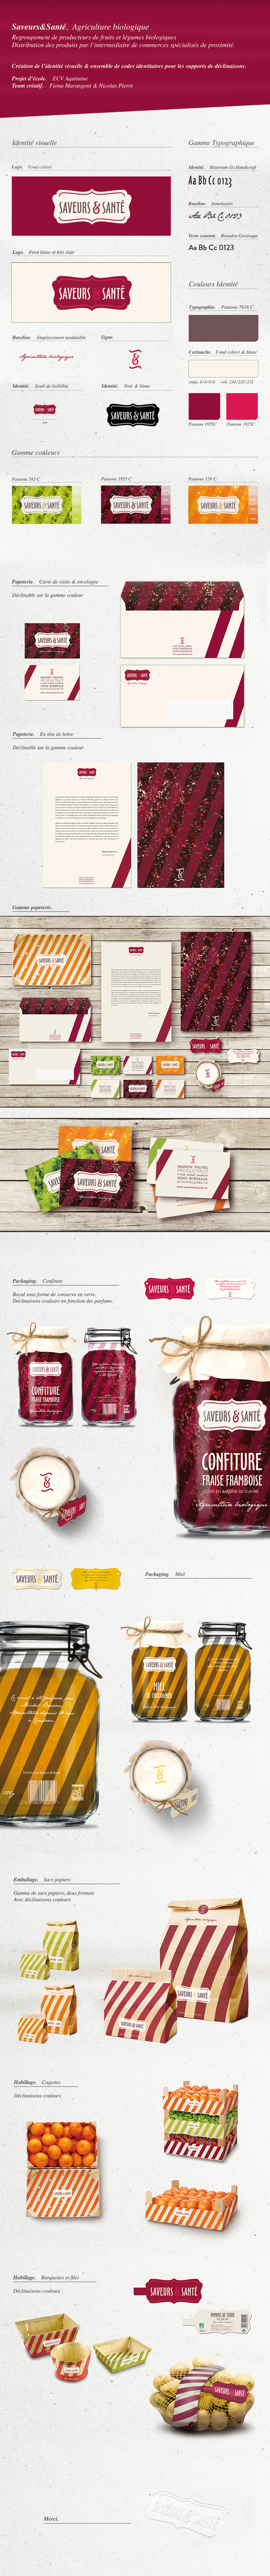 Saveurs&Santé by Fiona MARANGONI & Nicolas PIERRE , via Behance